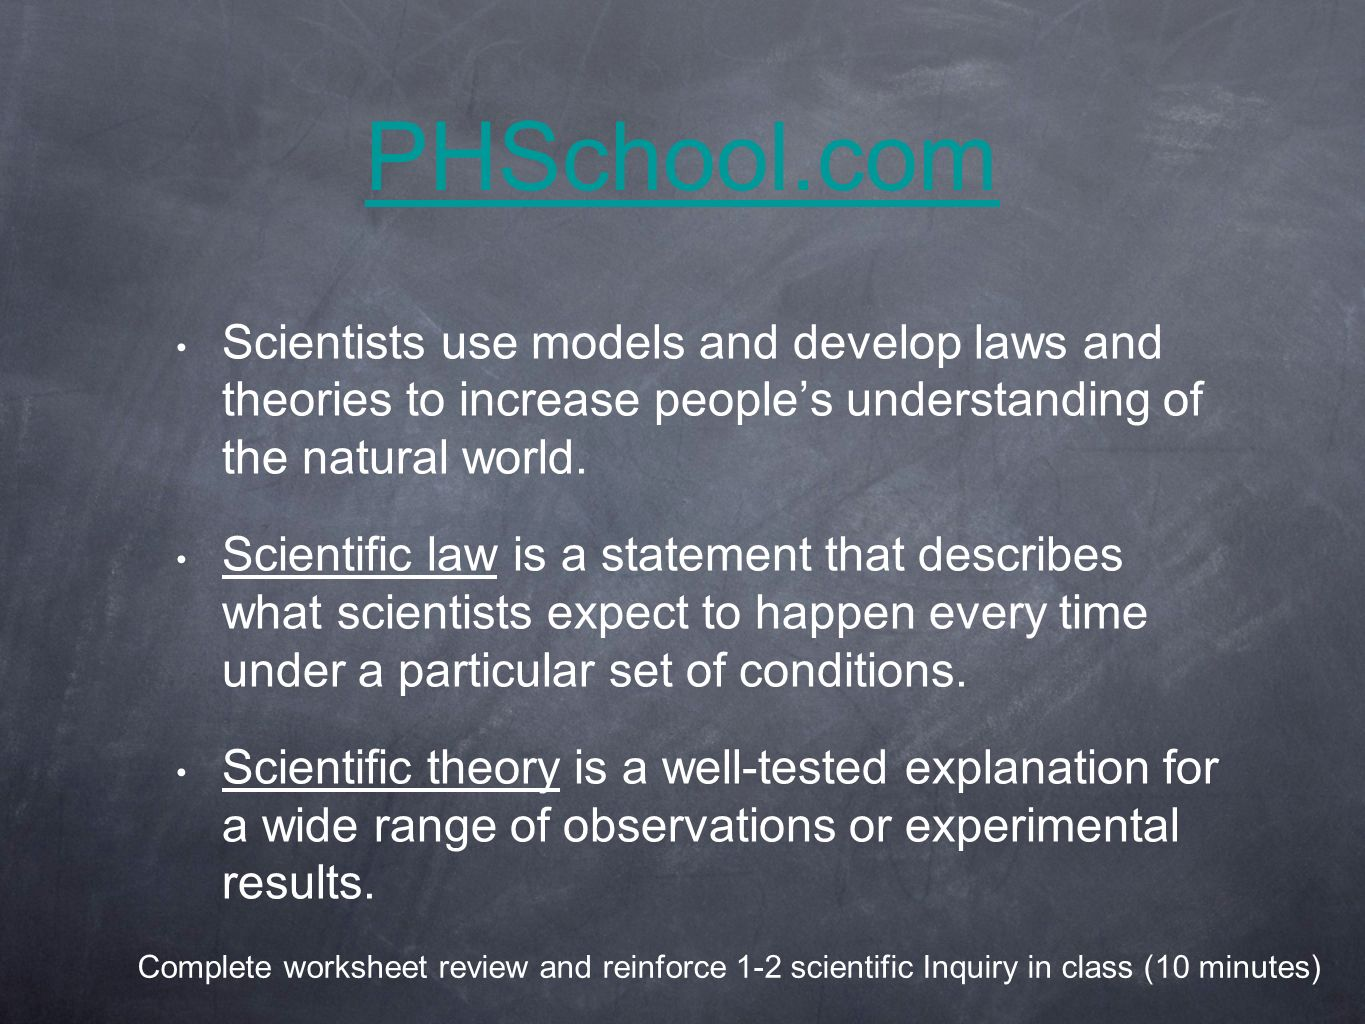 PHSchool.com Scientists use models and develop laws and theories to increase people's understanding of the natural world.